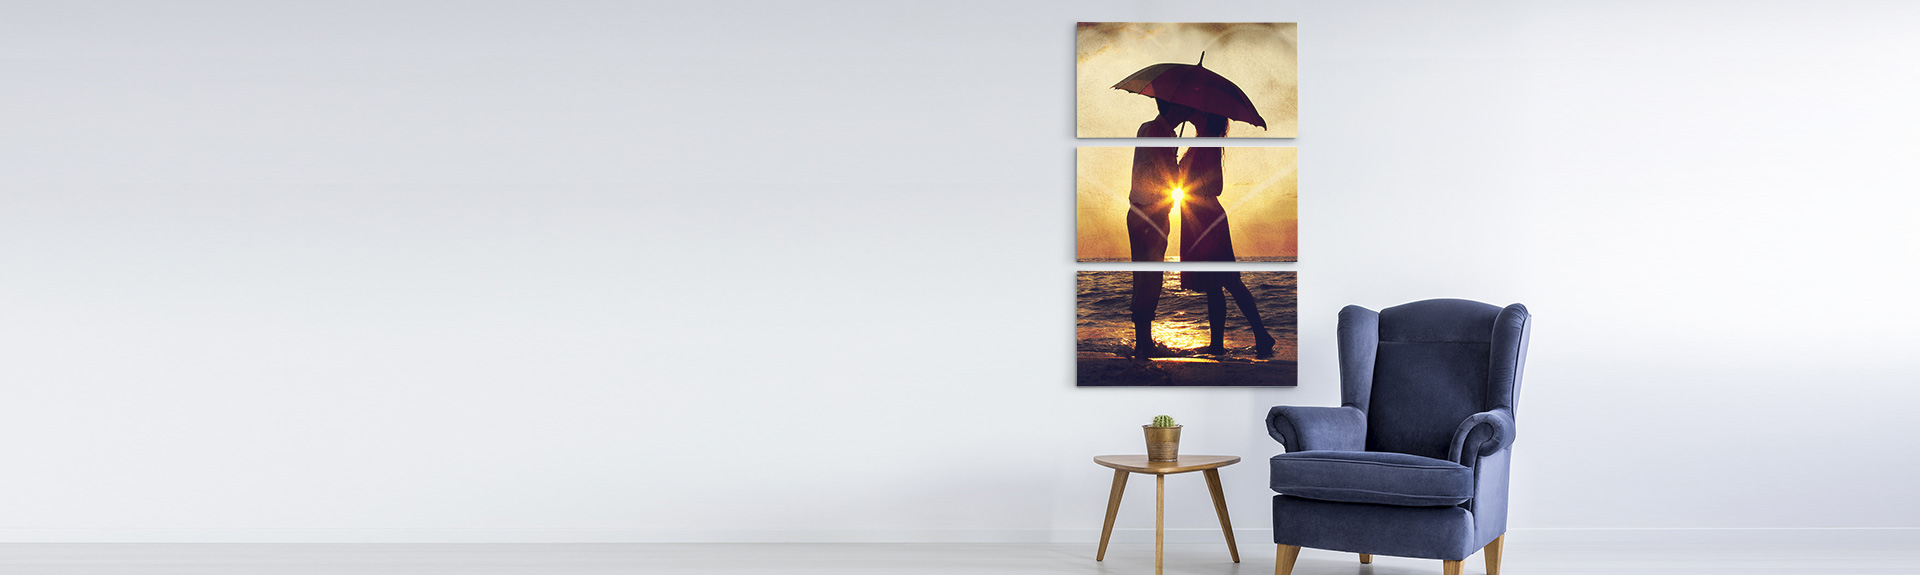 Art Canvas Wall Displays